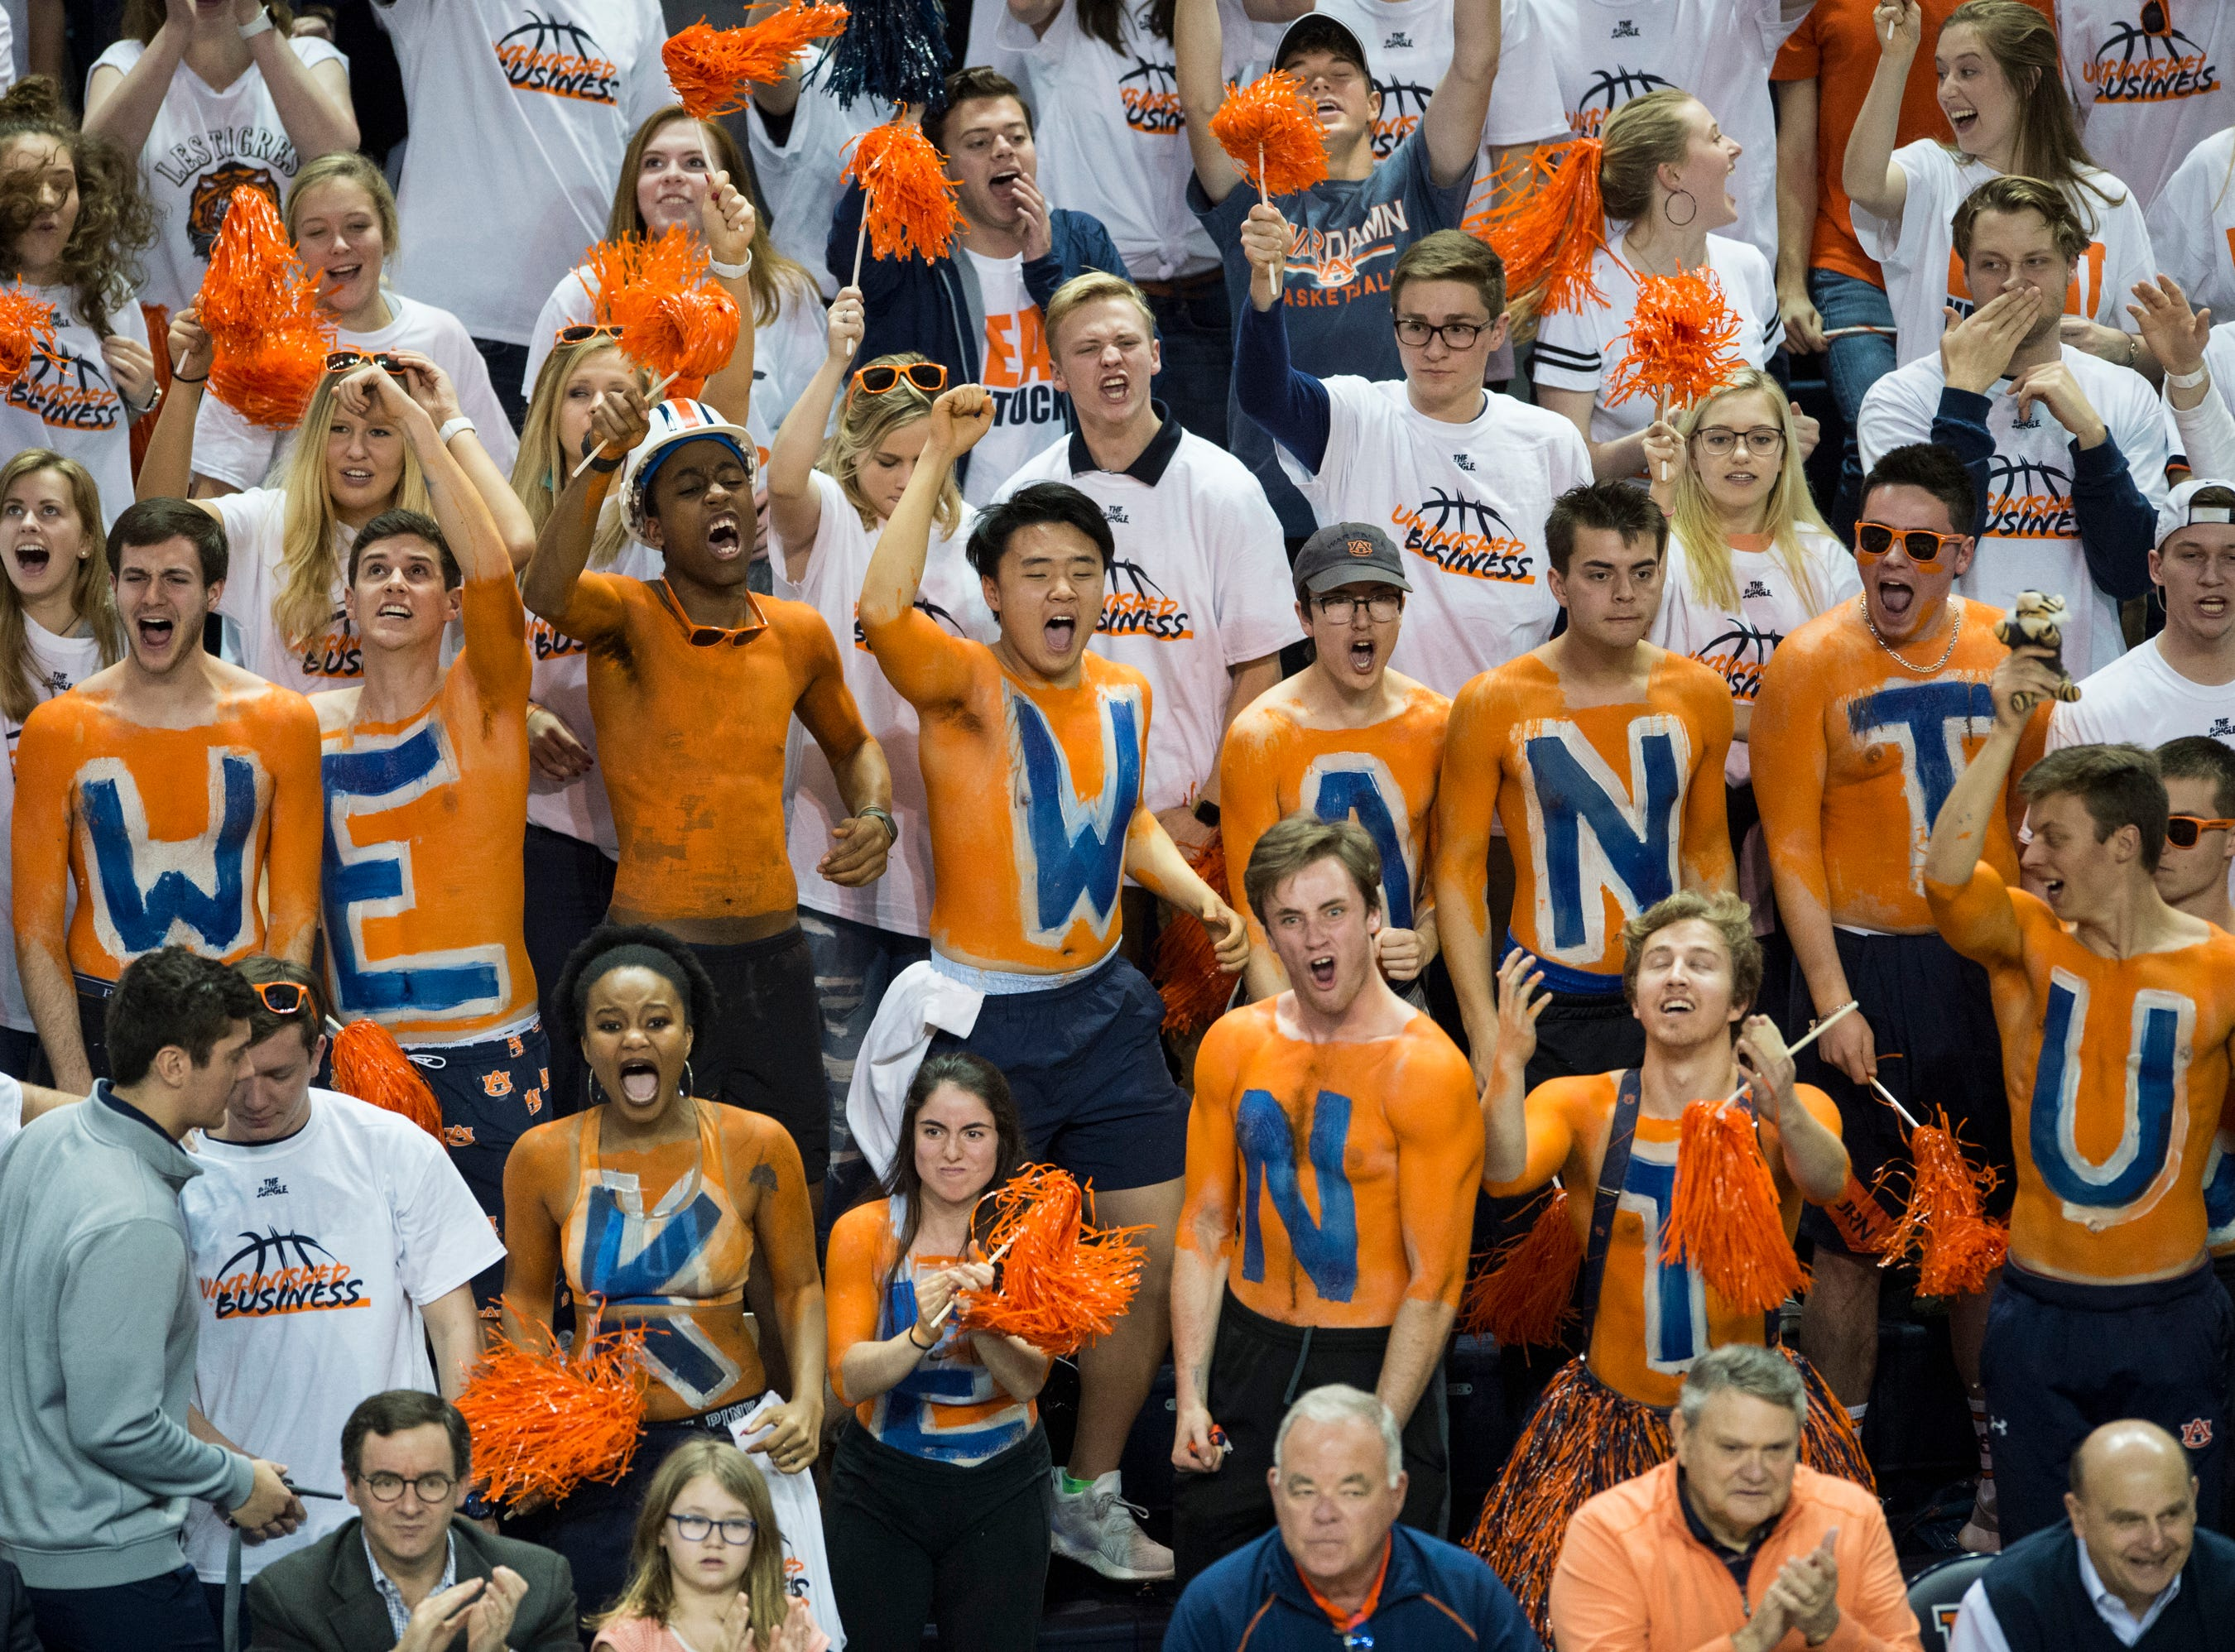 Auburn fans cheer on their team at Auburn Arena in Auburn, Ala., on Saturday, Jan. 19, 2019. Kentucky defeats Auburn 82-80.